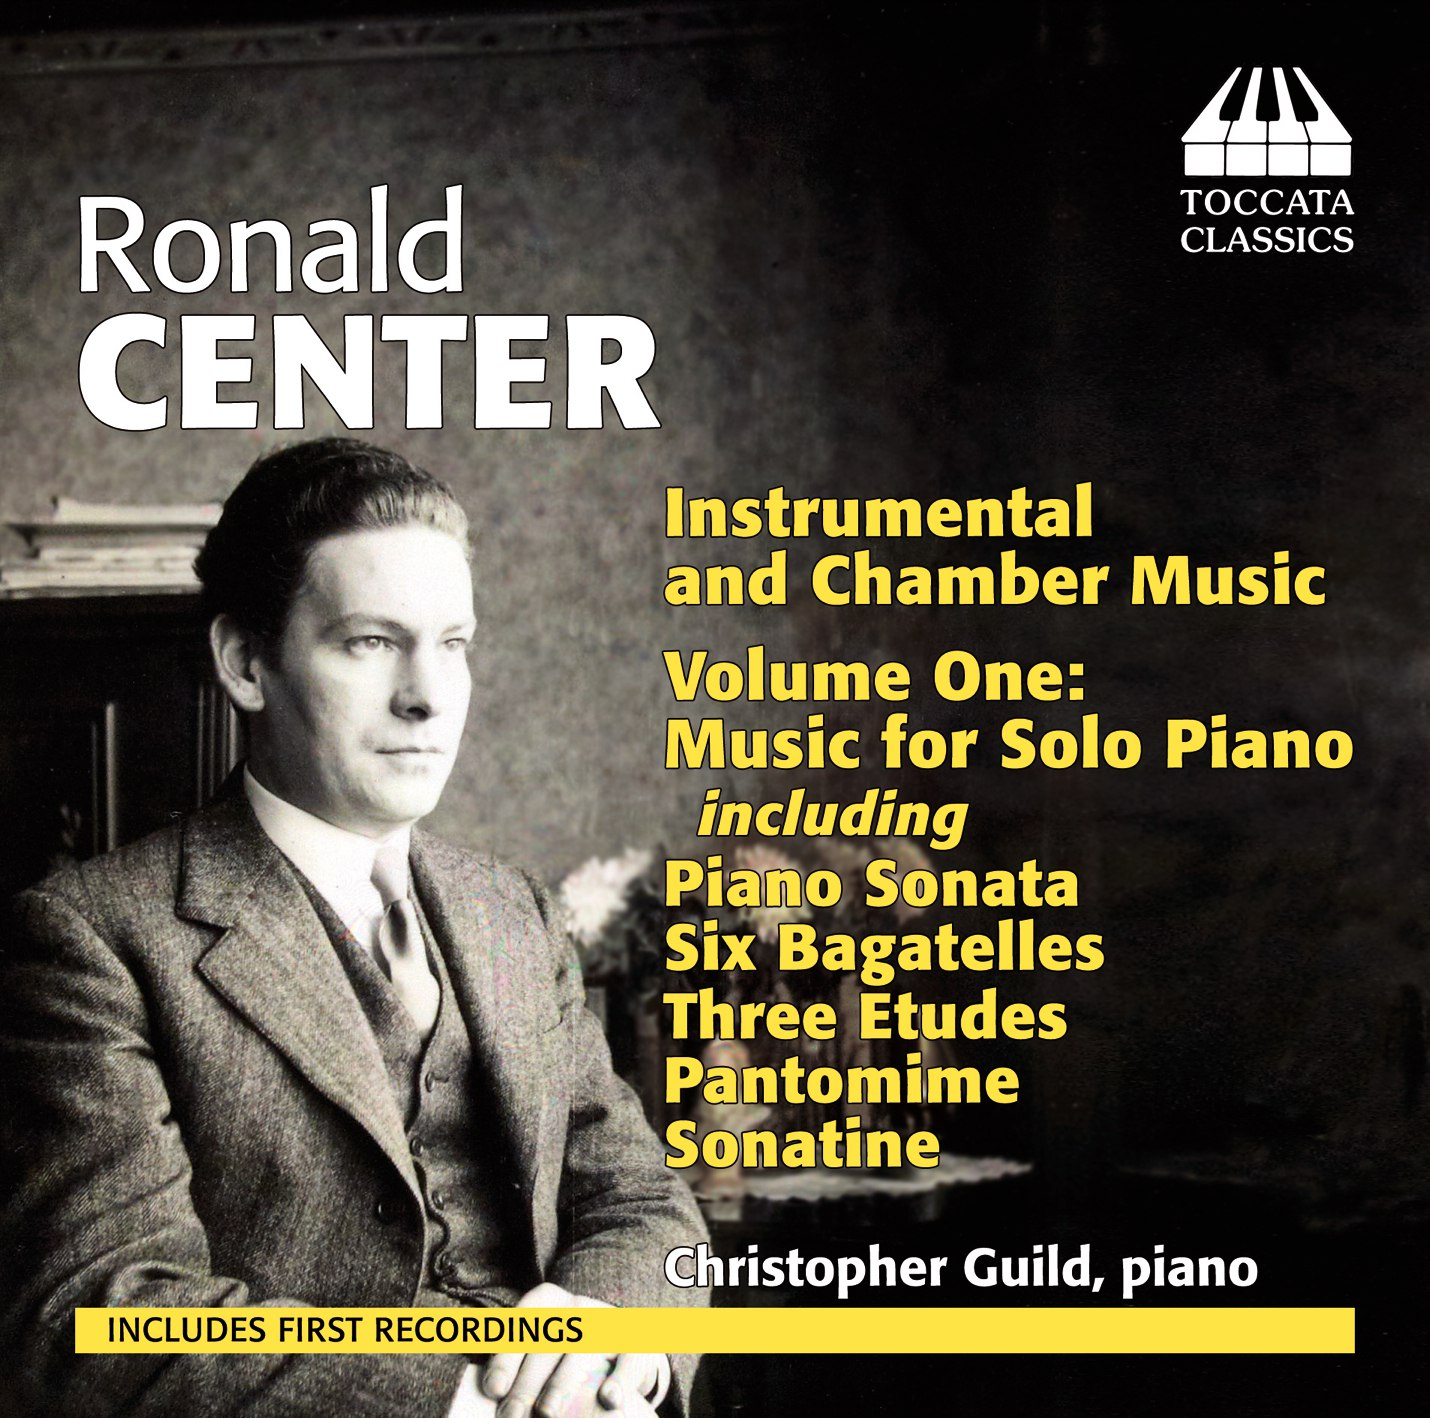 Ronald Center: Instrumental and Chamber Music